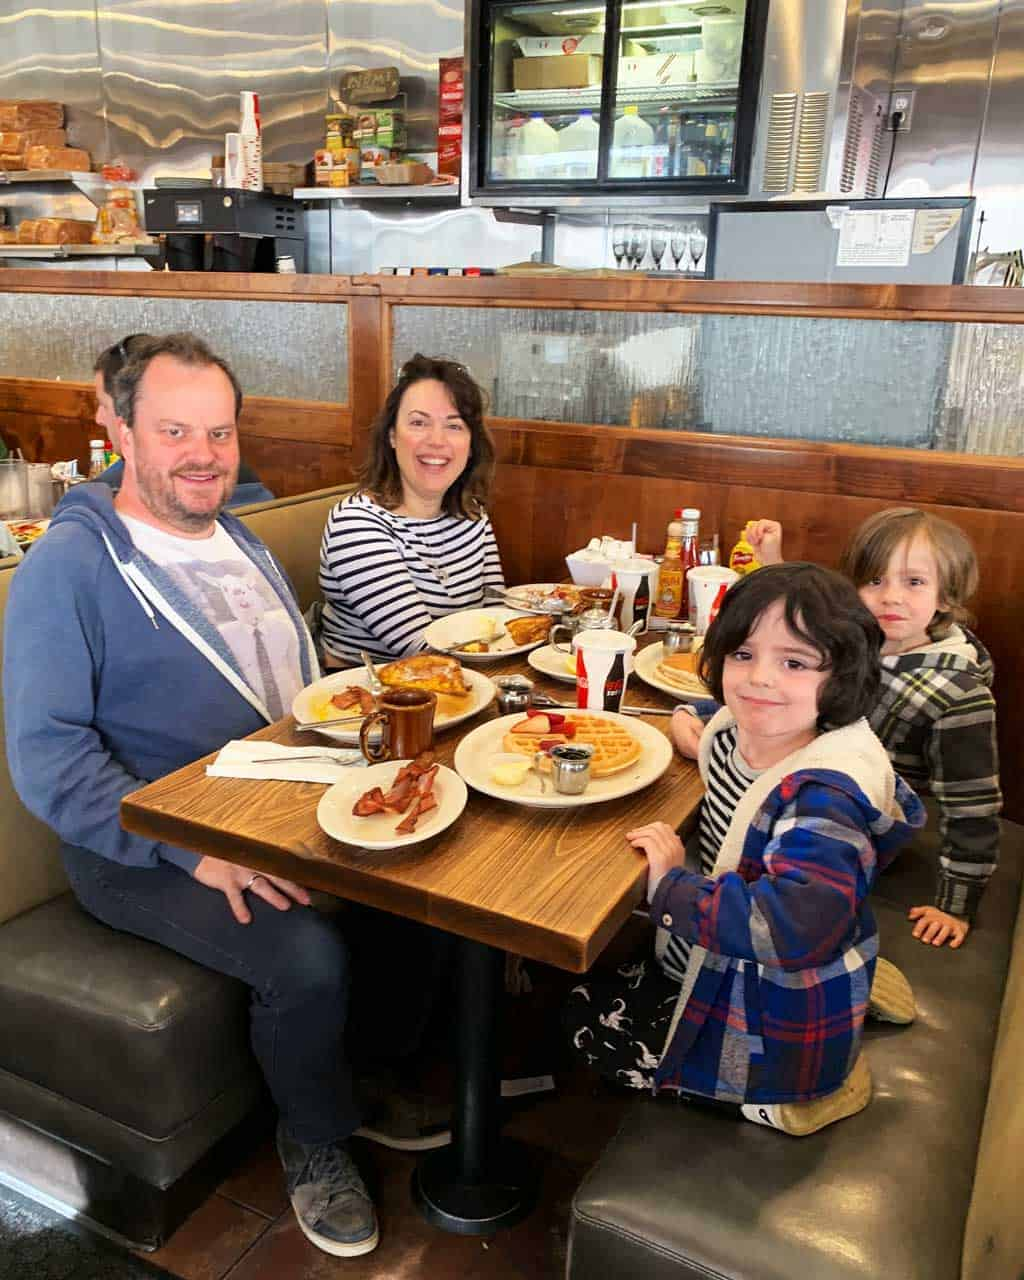 Family breakfast at The Pinecrest Diner.